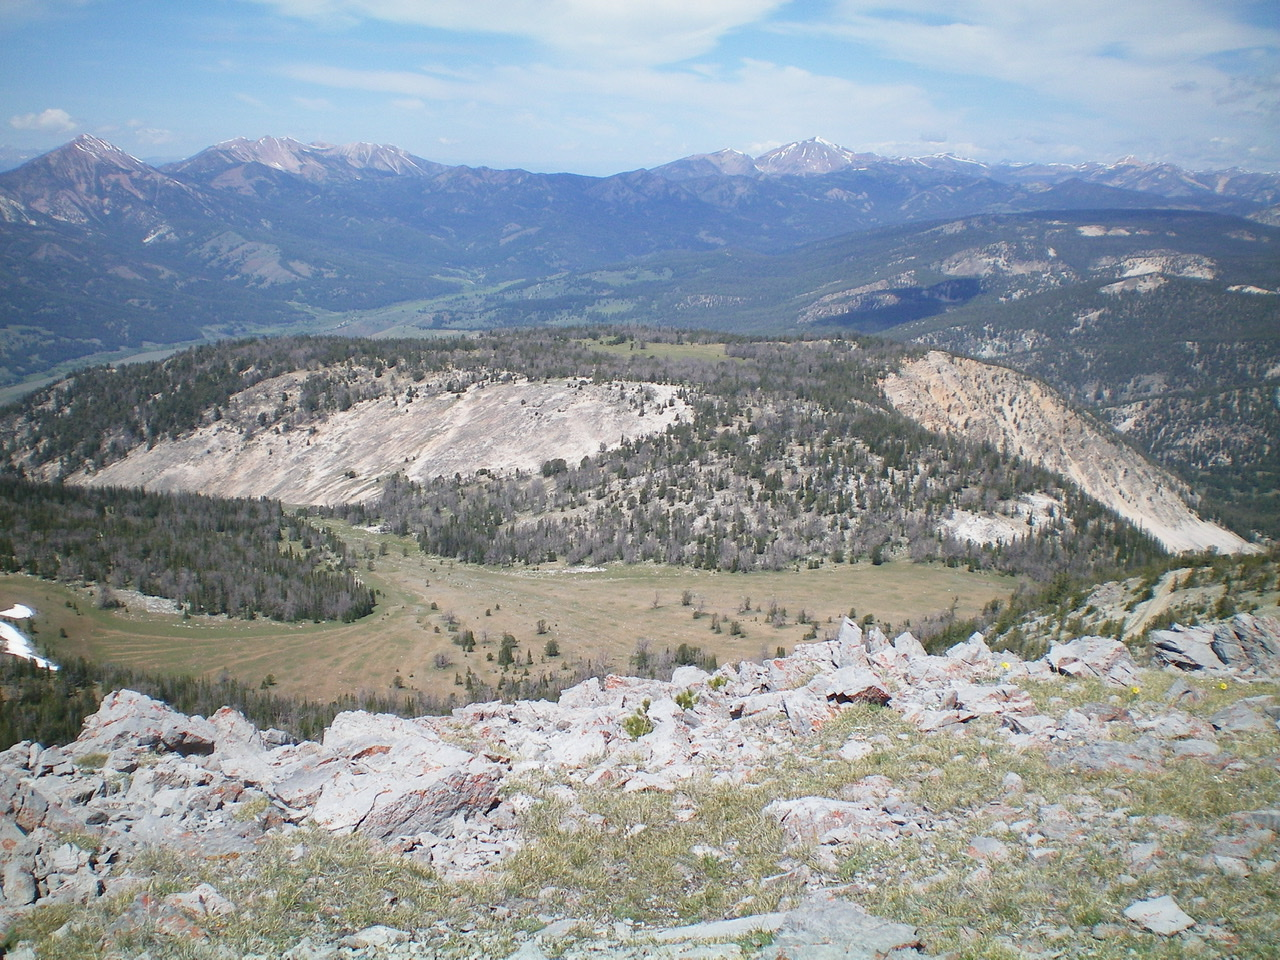 The Southwest Ridge as viewed from the upper reaches of the peak. The ridge crosses the meadow, follows a forested section (right of center), and then bends L to follow a ridge crest to the valley floor at Sawmill Canyon Road. Livingston Douglas Photo